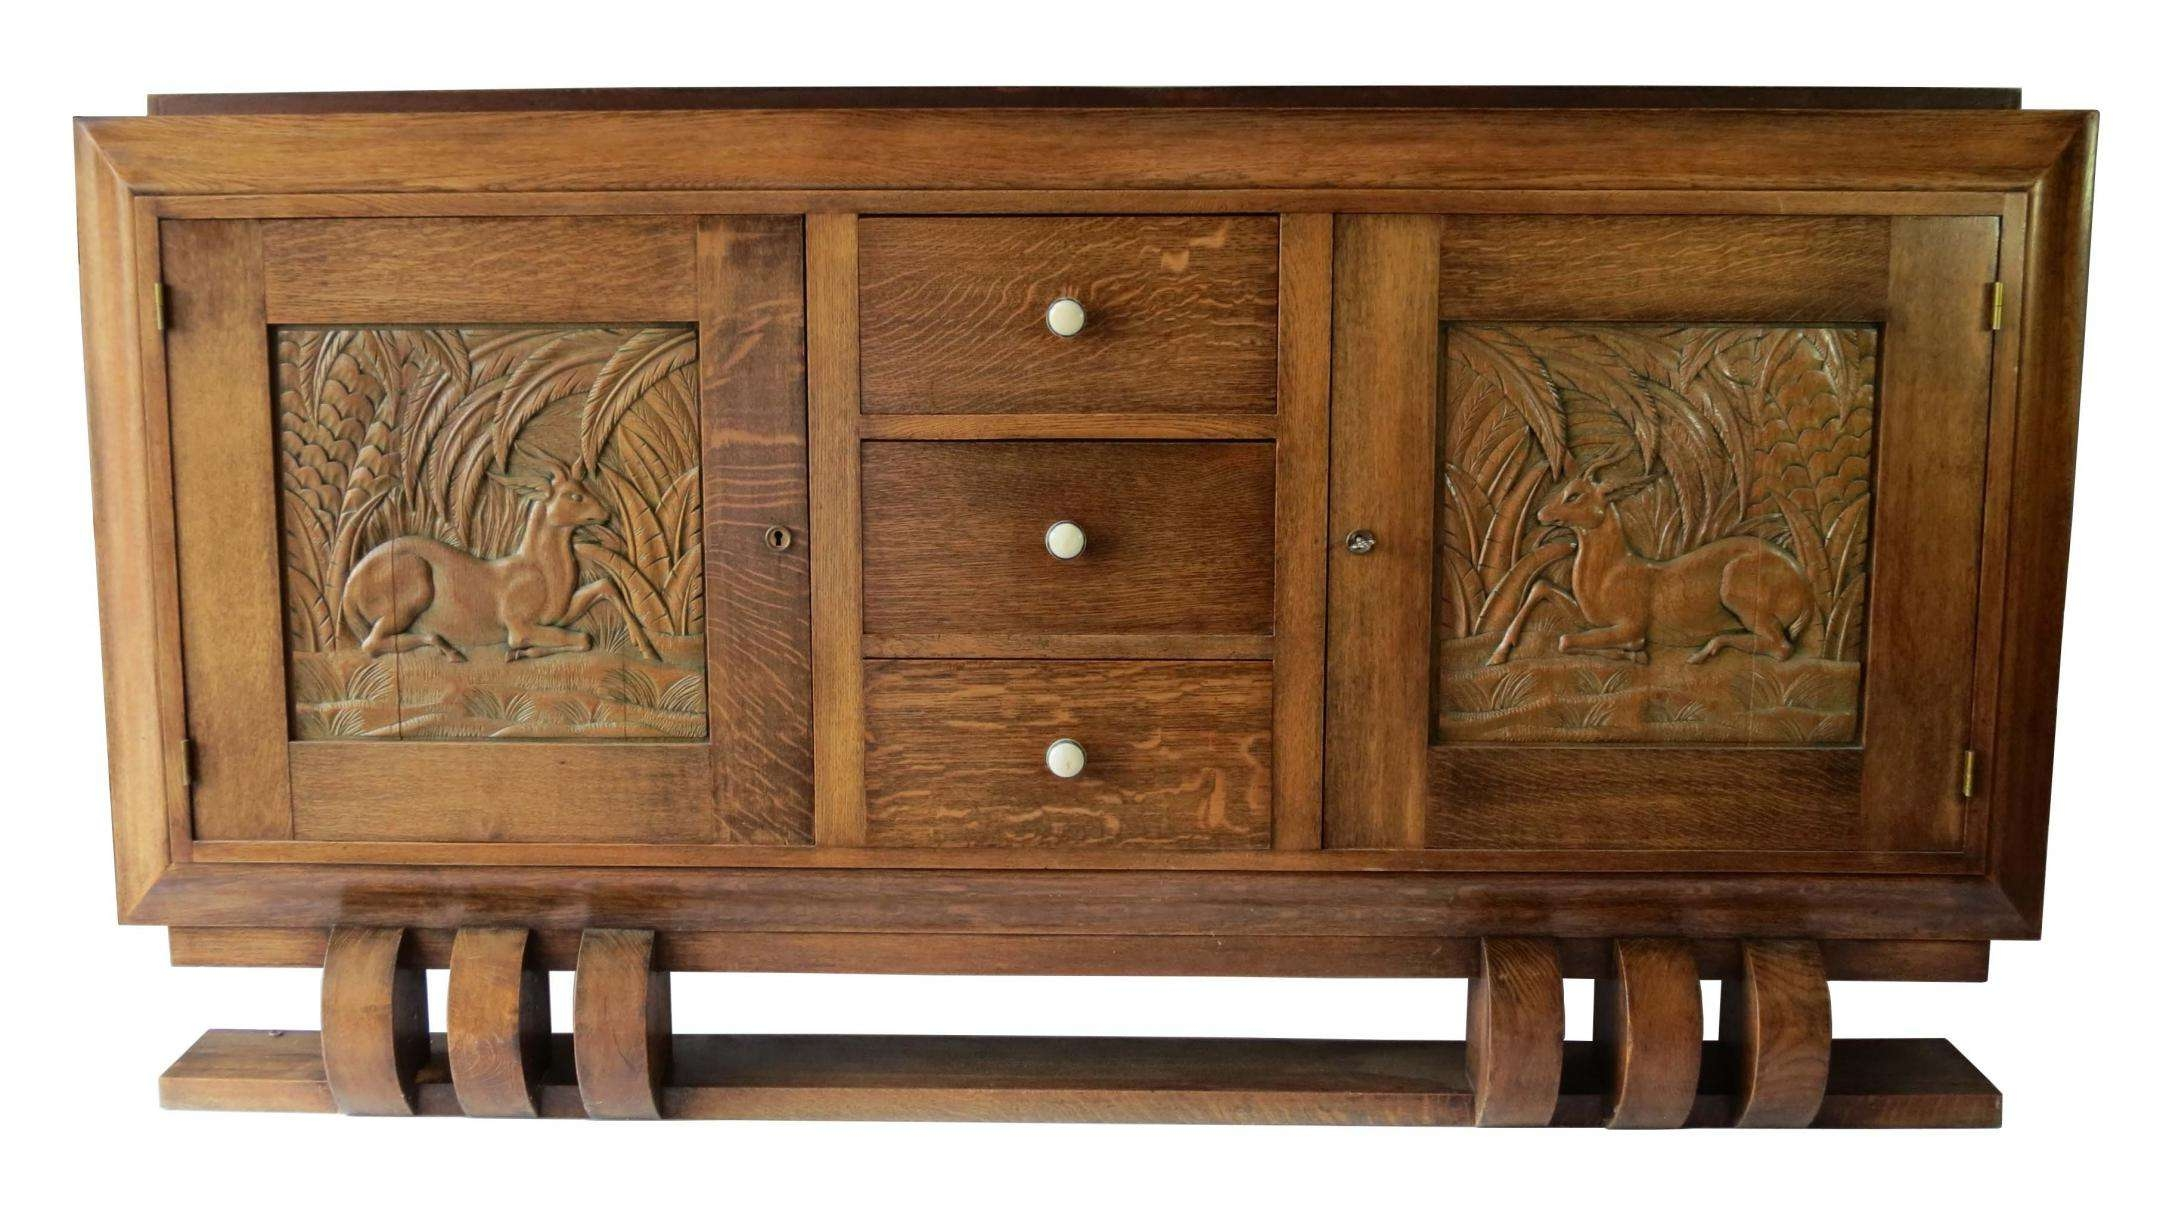 Dudouyt French Art Deco Sideboard With Carved Biches | Modernism With Art Deco Sideboards (View 5 of 20)